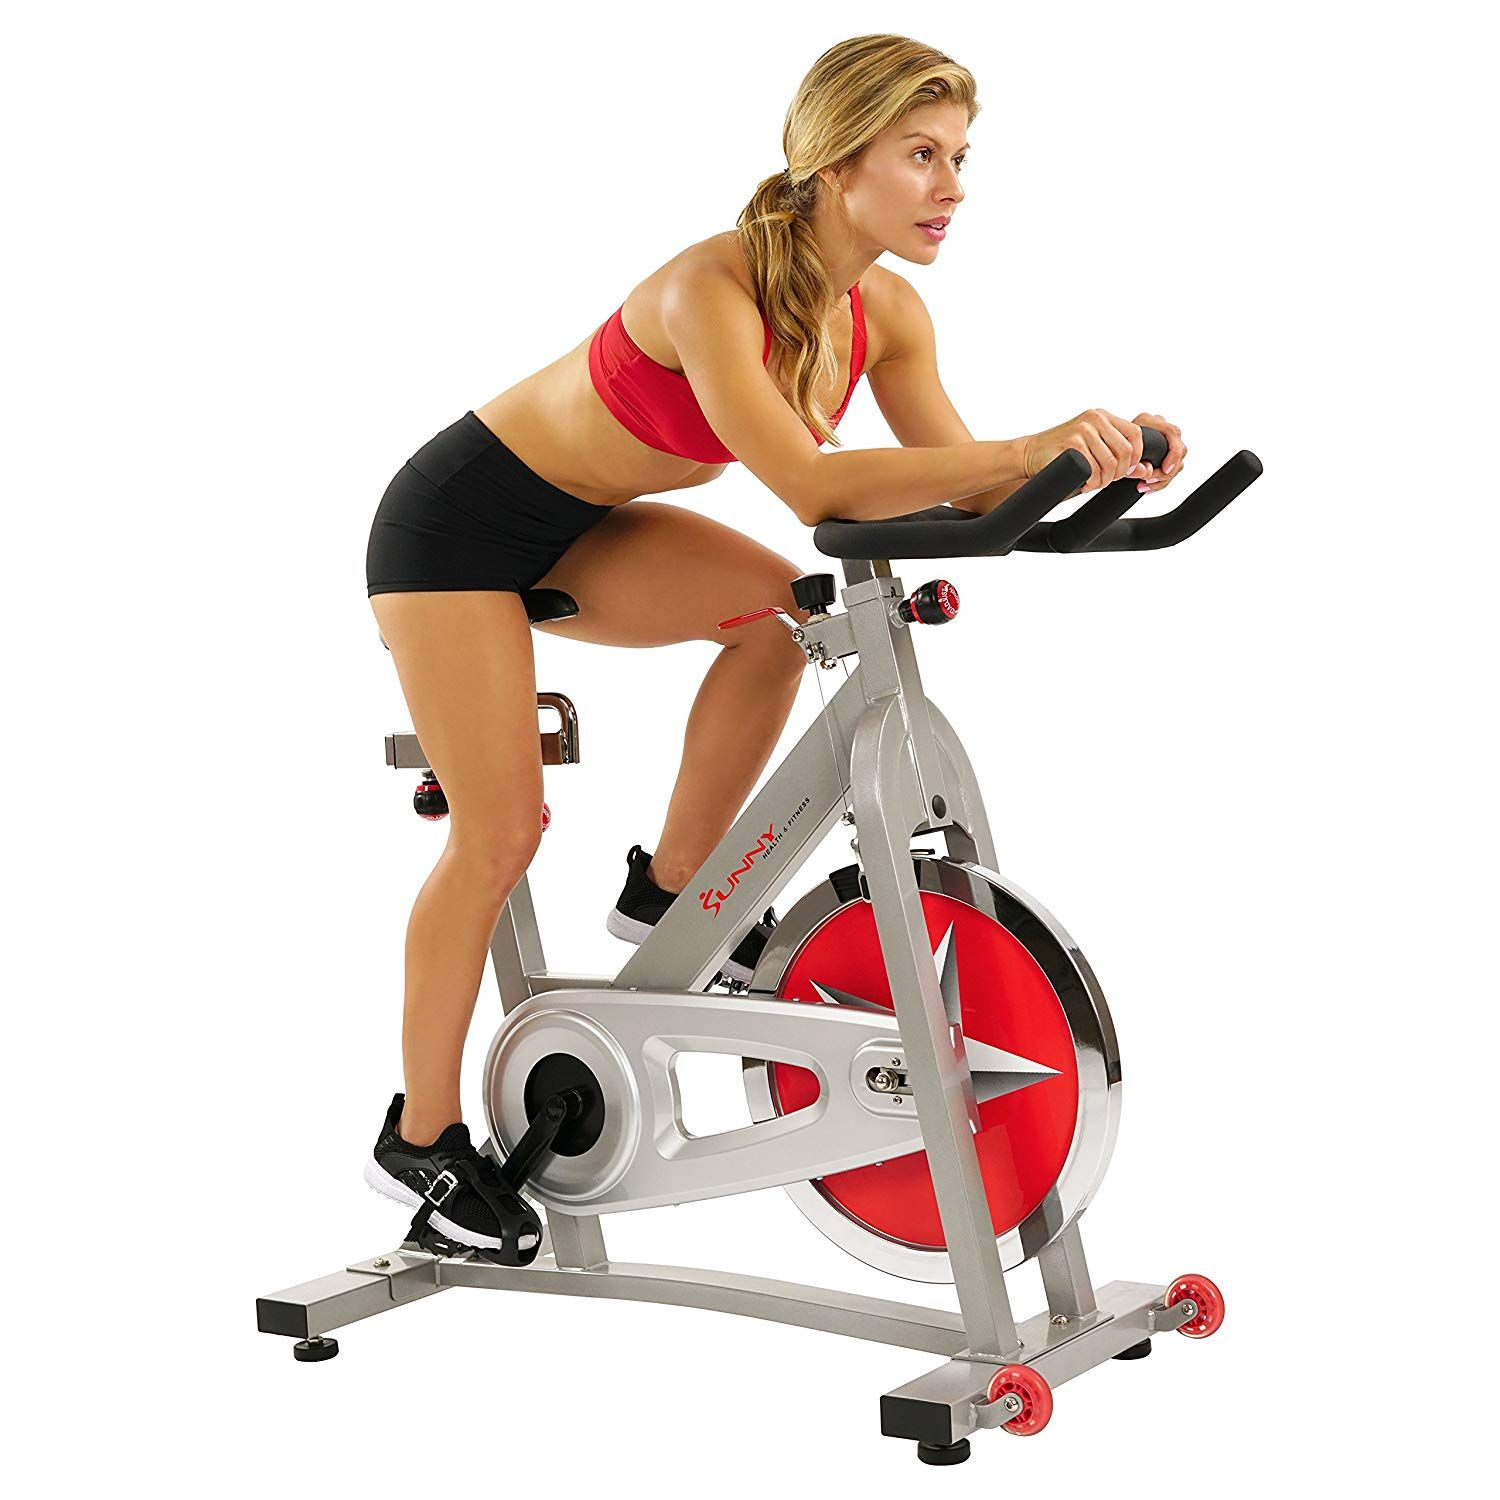 Sunny Health Fitness Pro Indoor Cycling Bike Best Indoor Cycle Review Best Exercise Bike Cycling Workout Indoor Cycling Bike